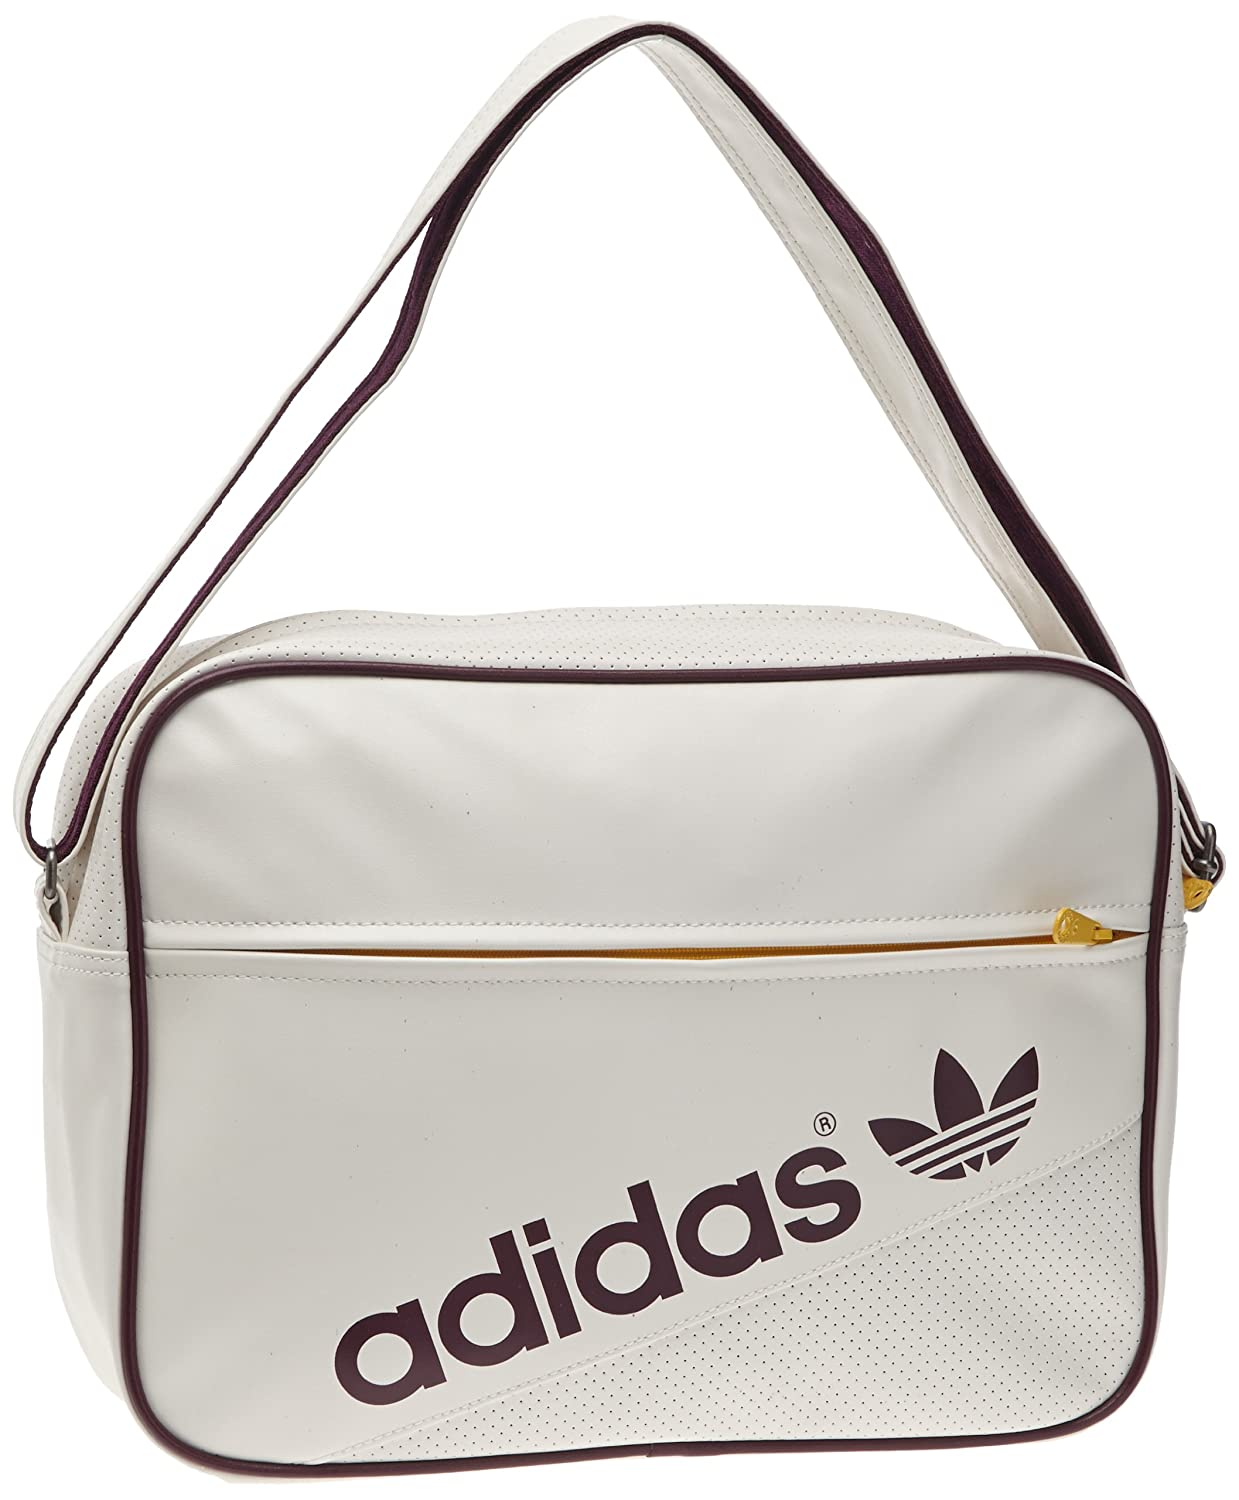 adidas Umhängetasche Airline Bag Perforated